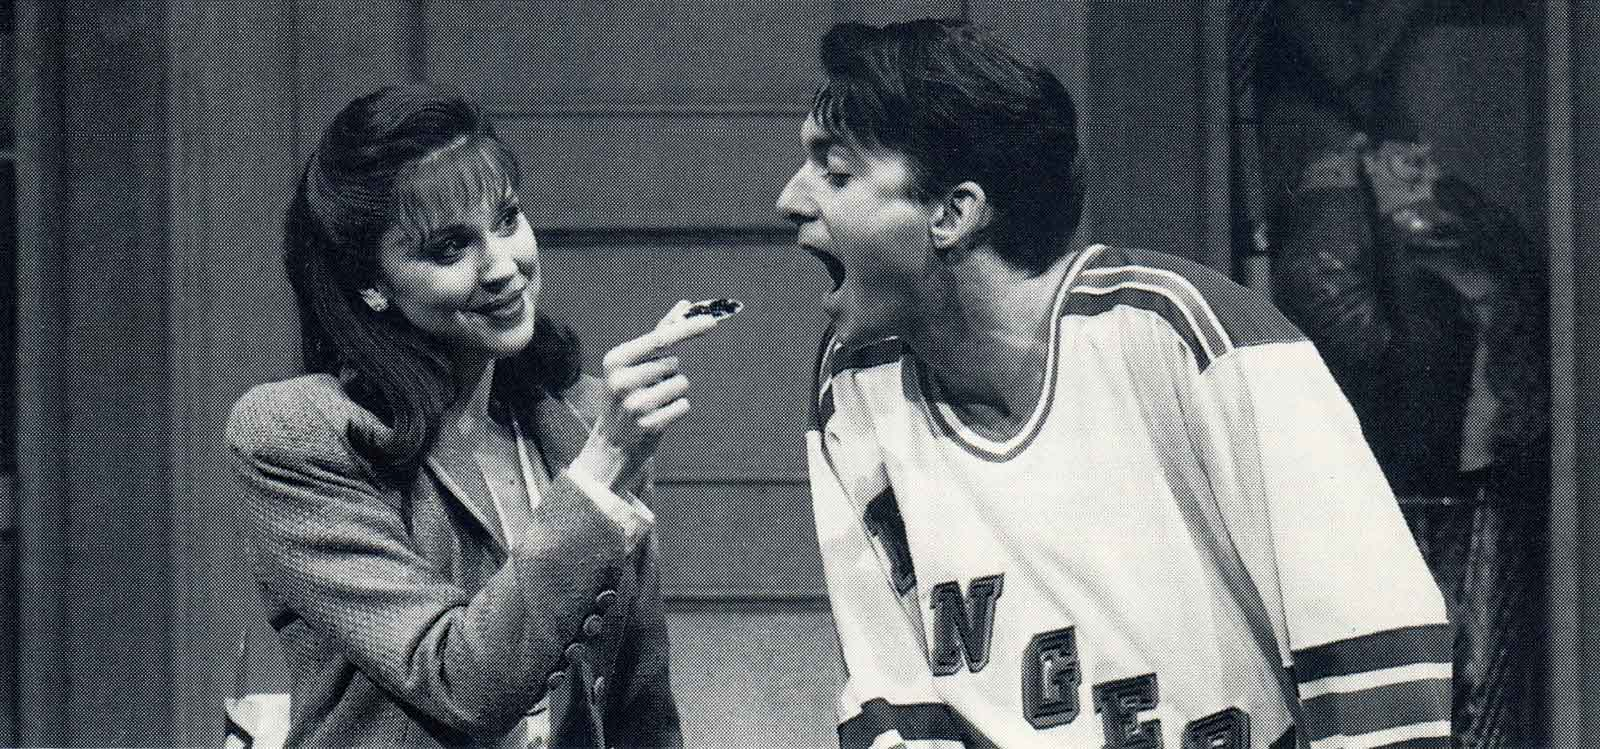 Black and white photo of Susan (Christa Moore) feeding caviar to Josh (Daniel Jenkins). He is dressed in a sports jersey and she is dressed in a business blazer.